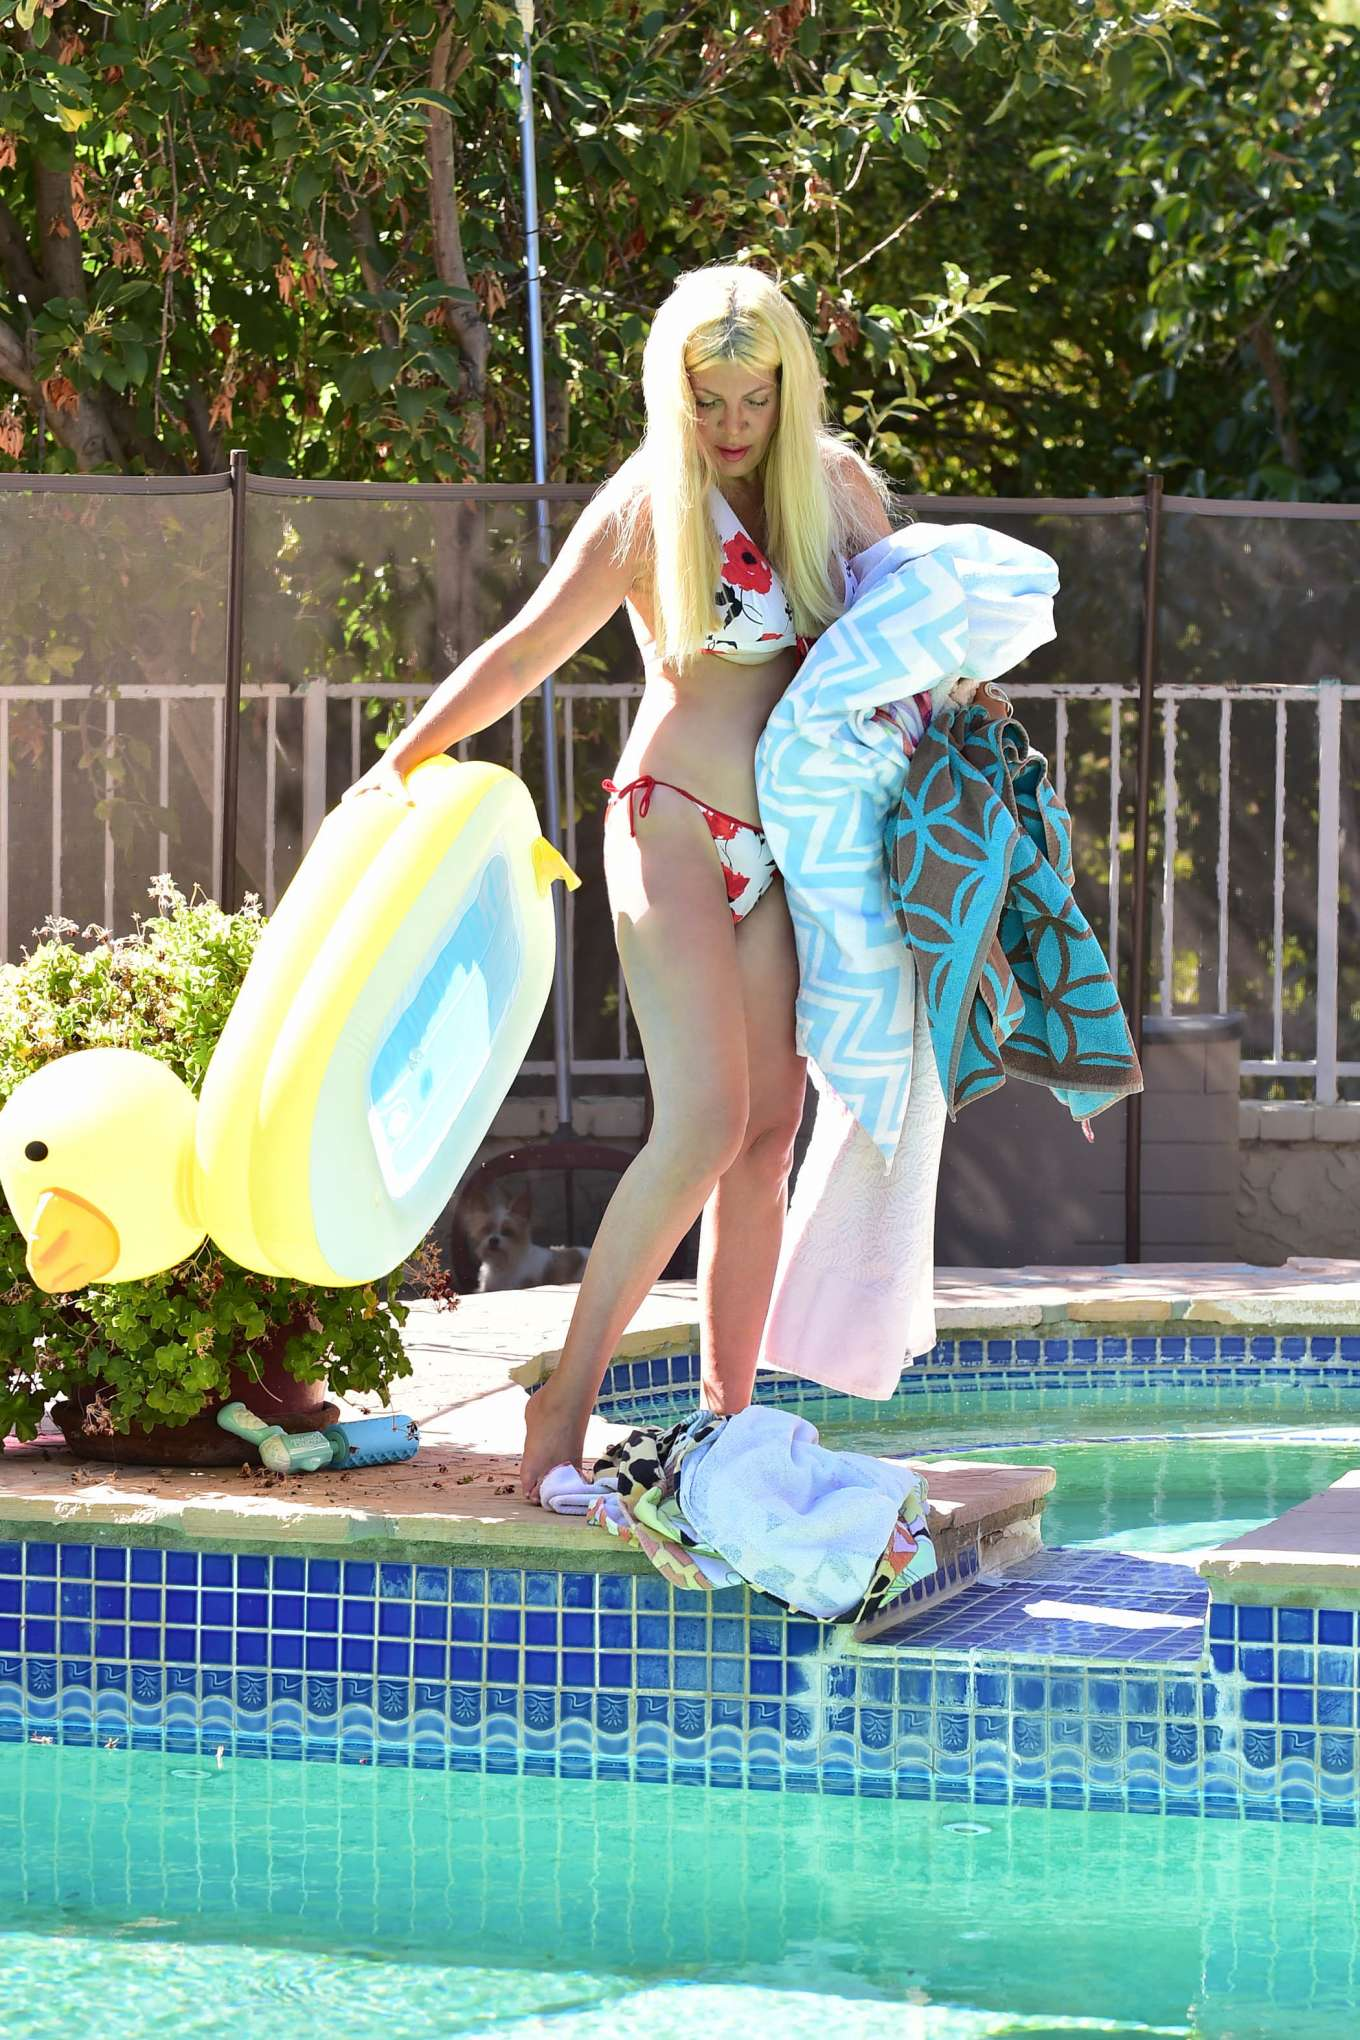 Tori Spelling in Bikini on the pool in Malibu